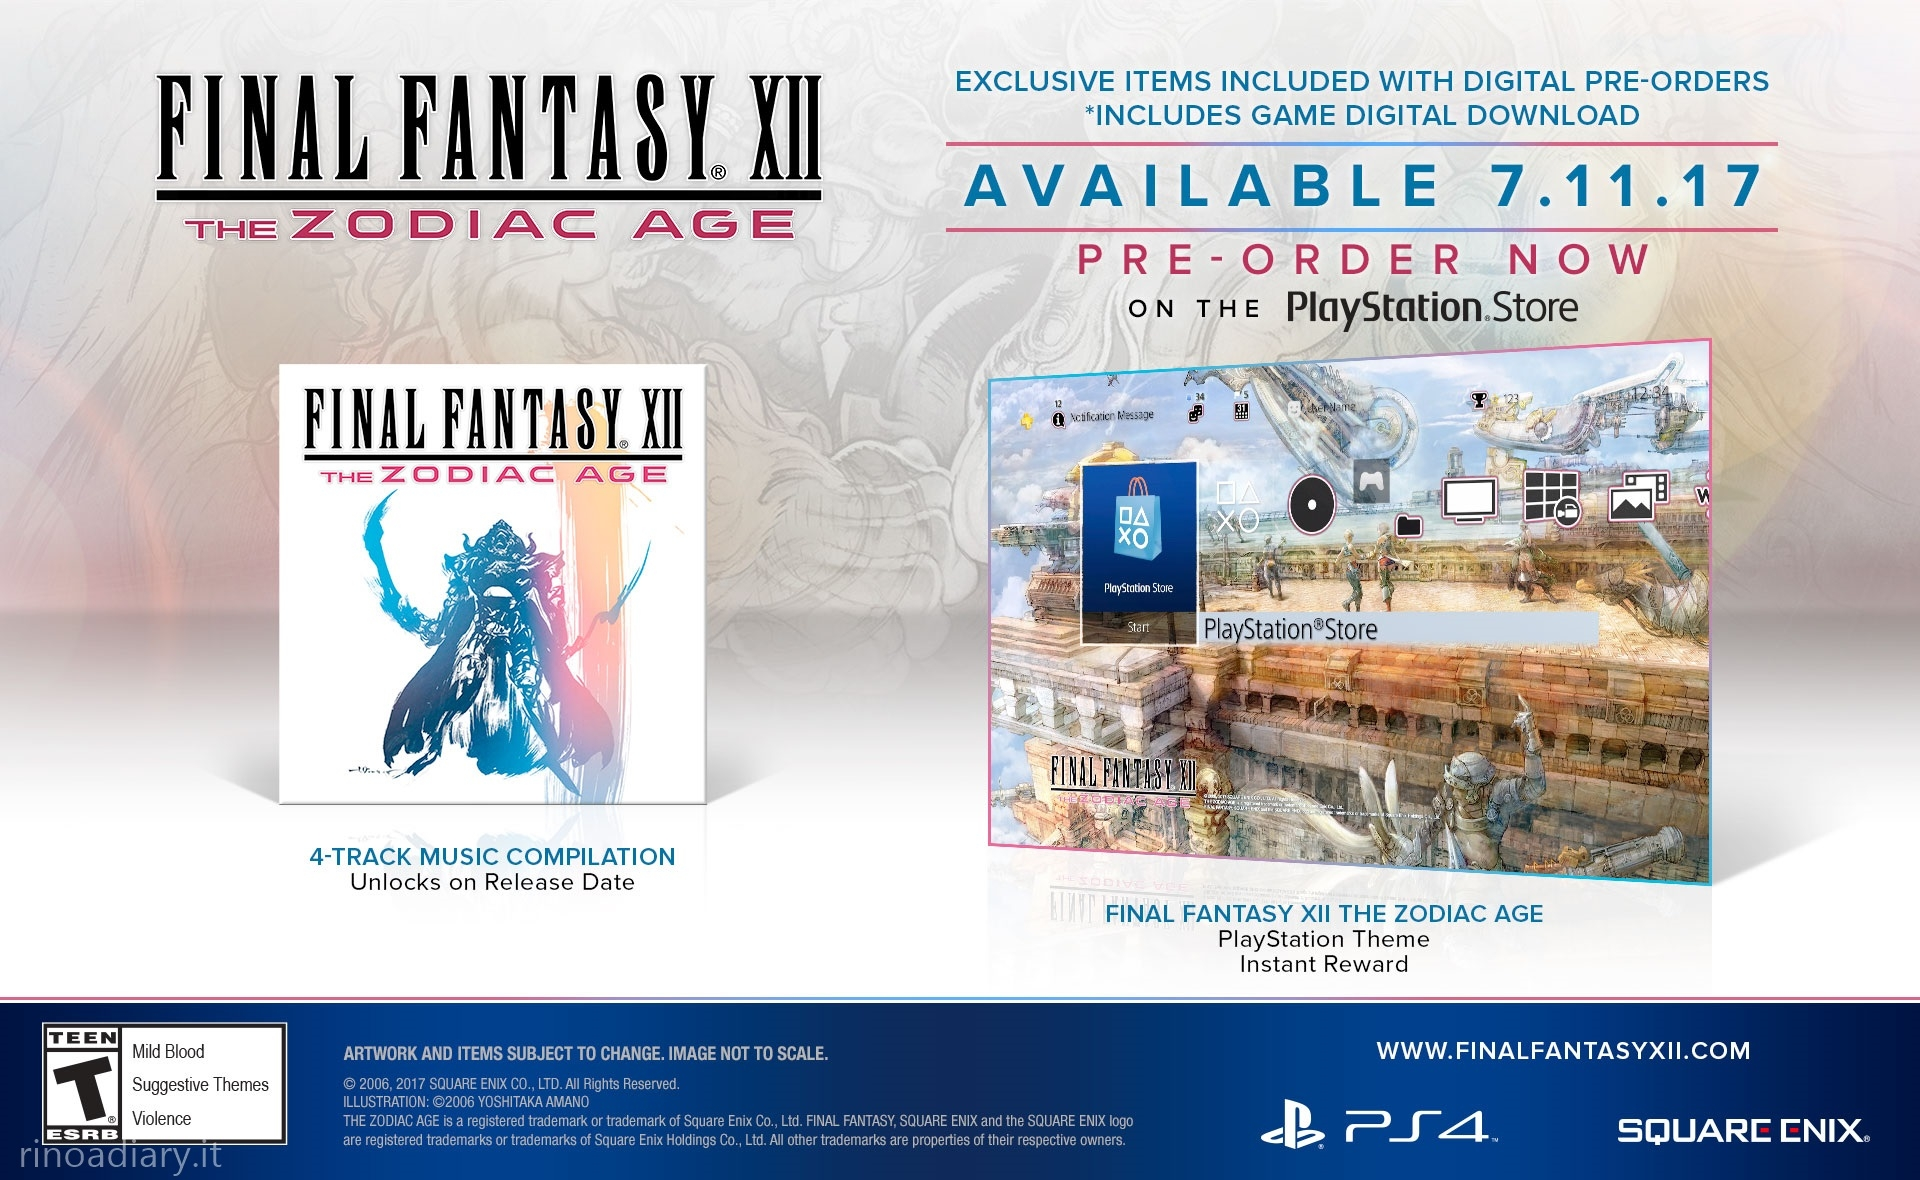 Final Fantasy XII: The Zodiac Age - Exclusive Digital Edition